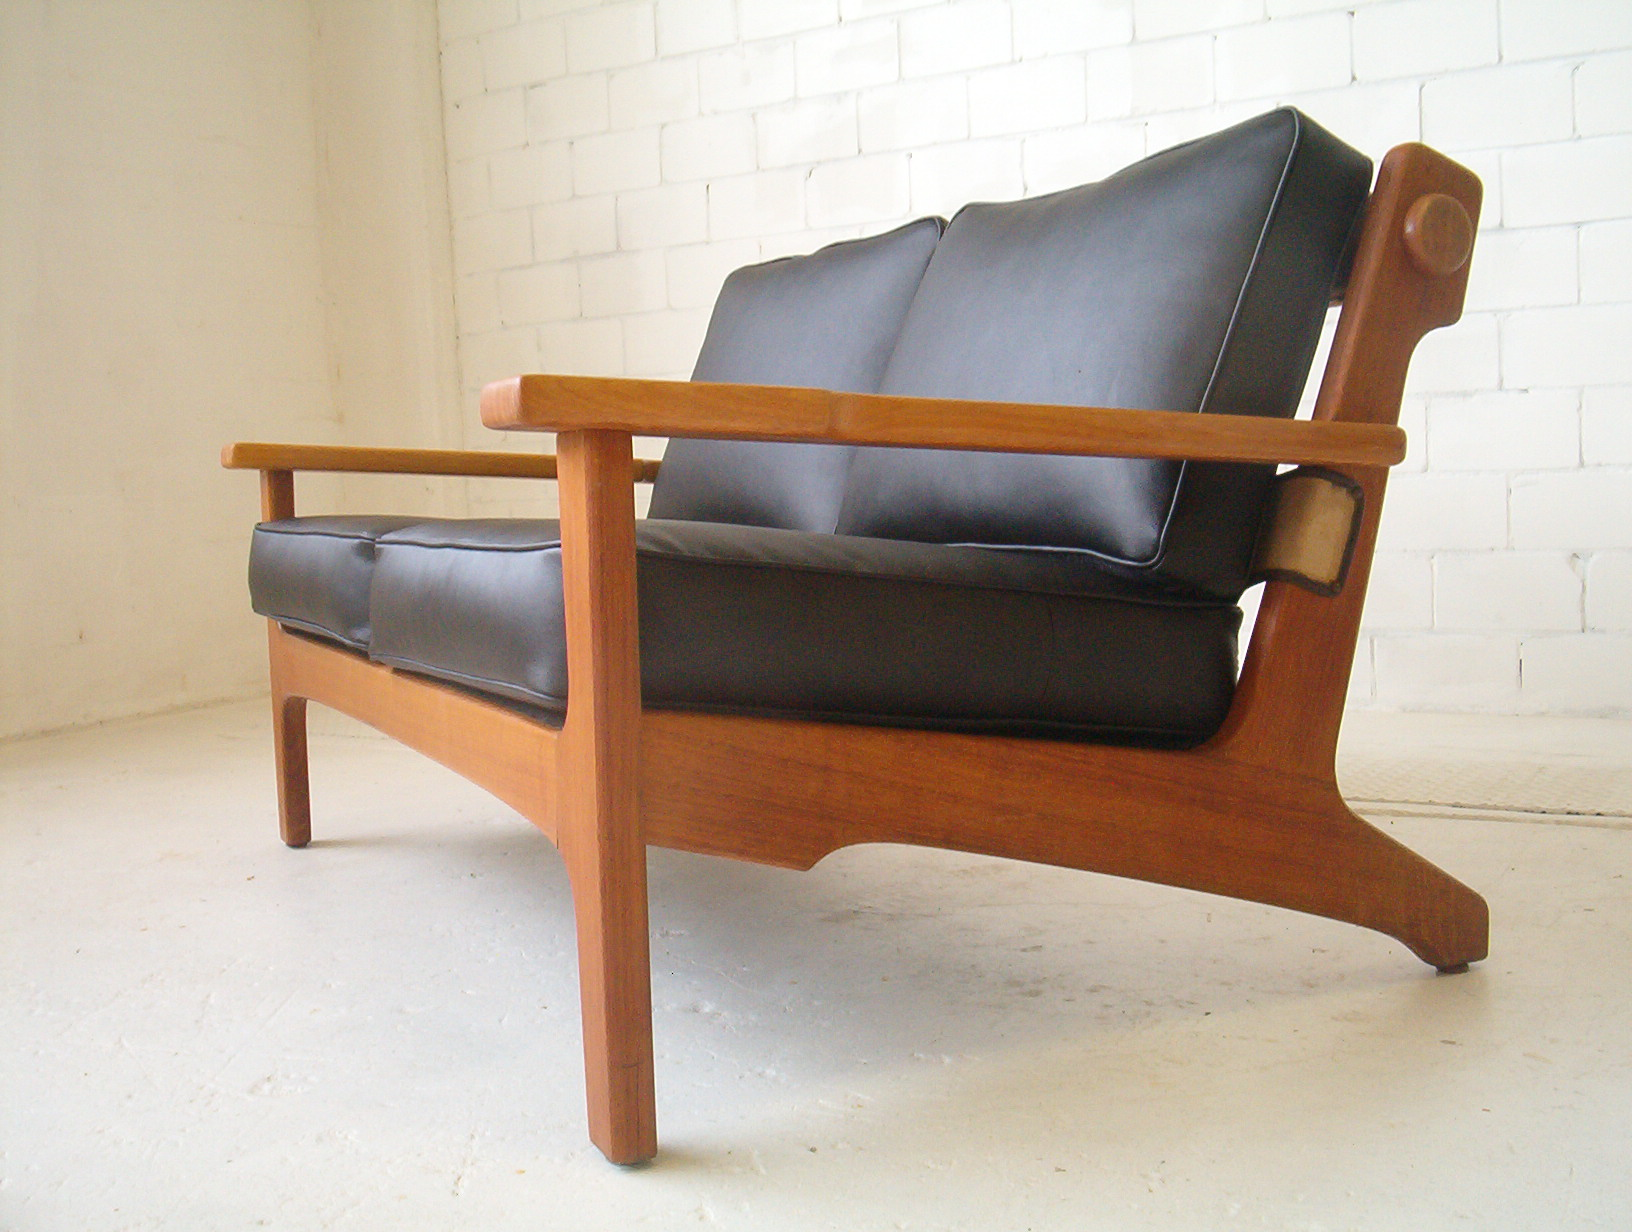 Amazing Vintage Tessa Lounge Sofa Couch T5 Retro Vintage Sofa Danish Lounge Era Caraccident5 Cool Chair Designs And Ideas Caraccident5Info